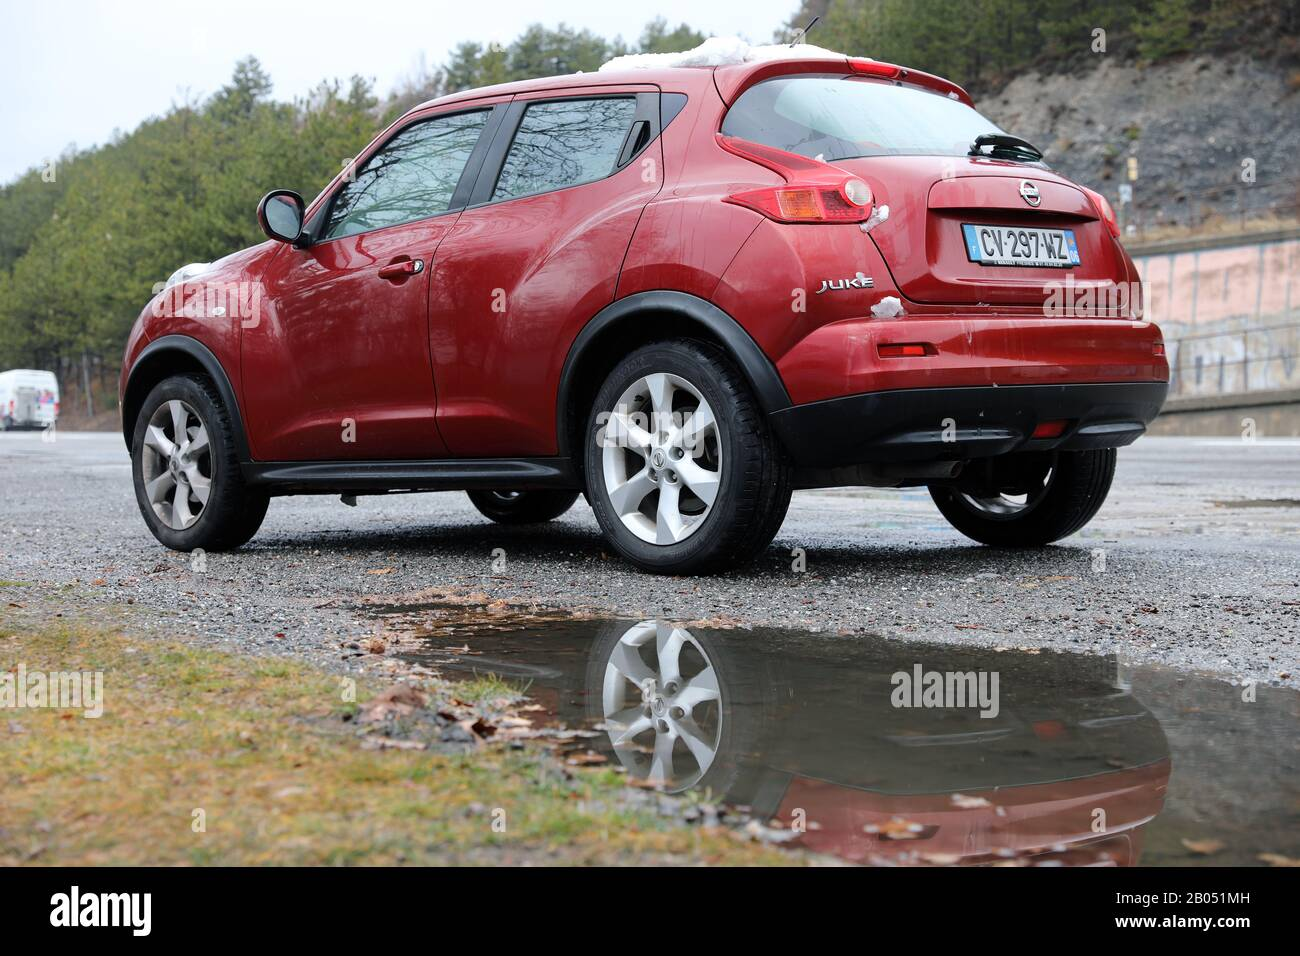 Savines Le Lac January 26 2020 Red Nissan Juke Crossover Suv Car Parked On The Side Of Road In Crots Hautes Alpes French Alps France Europe C Stock Photo Alamy